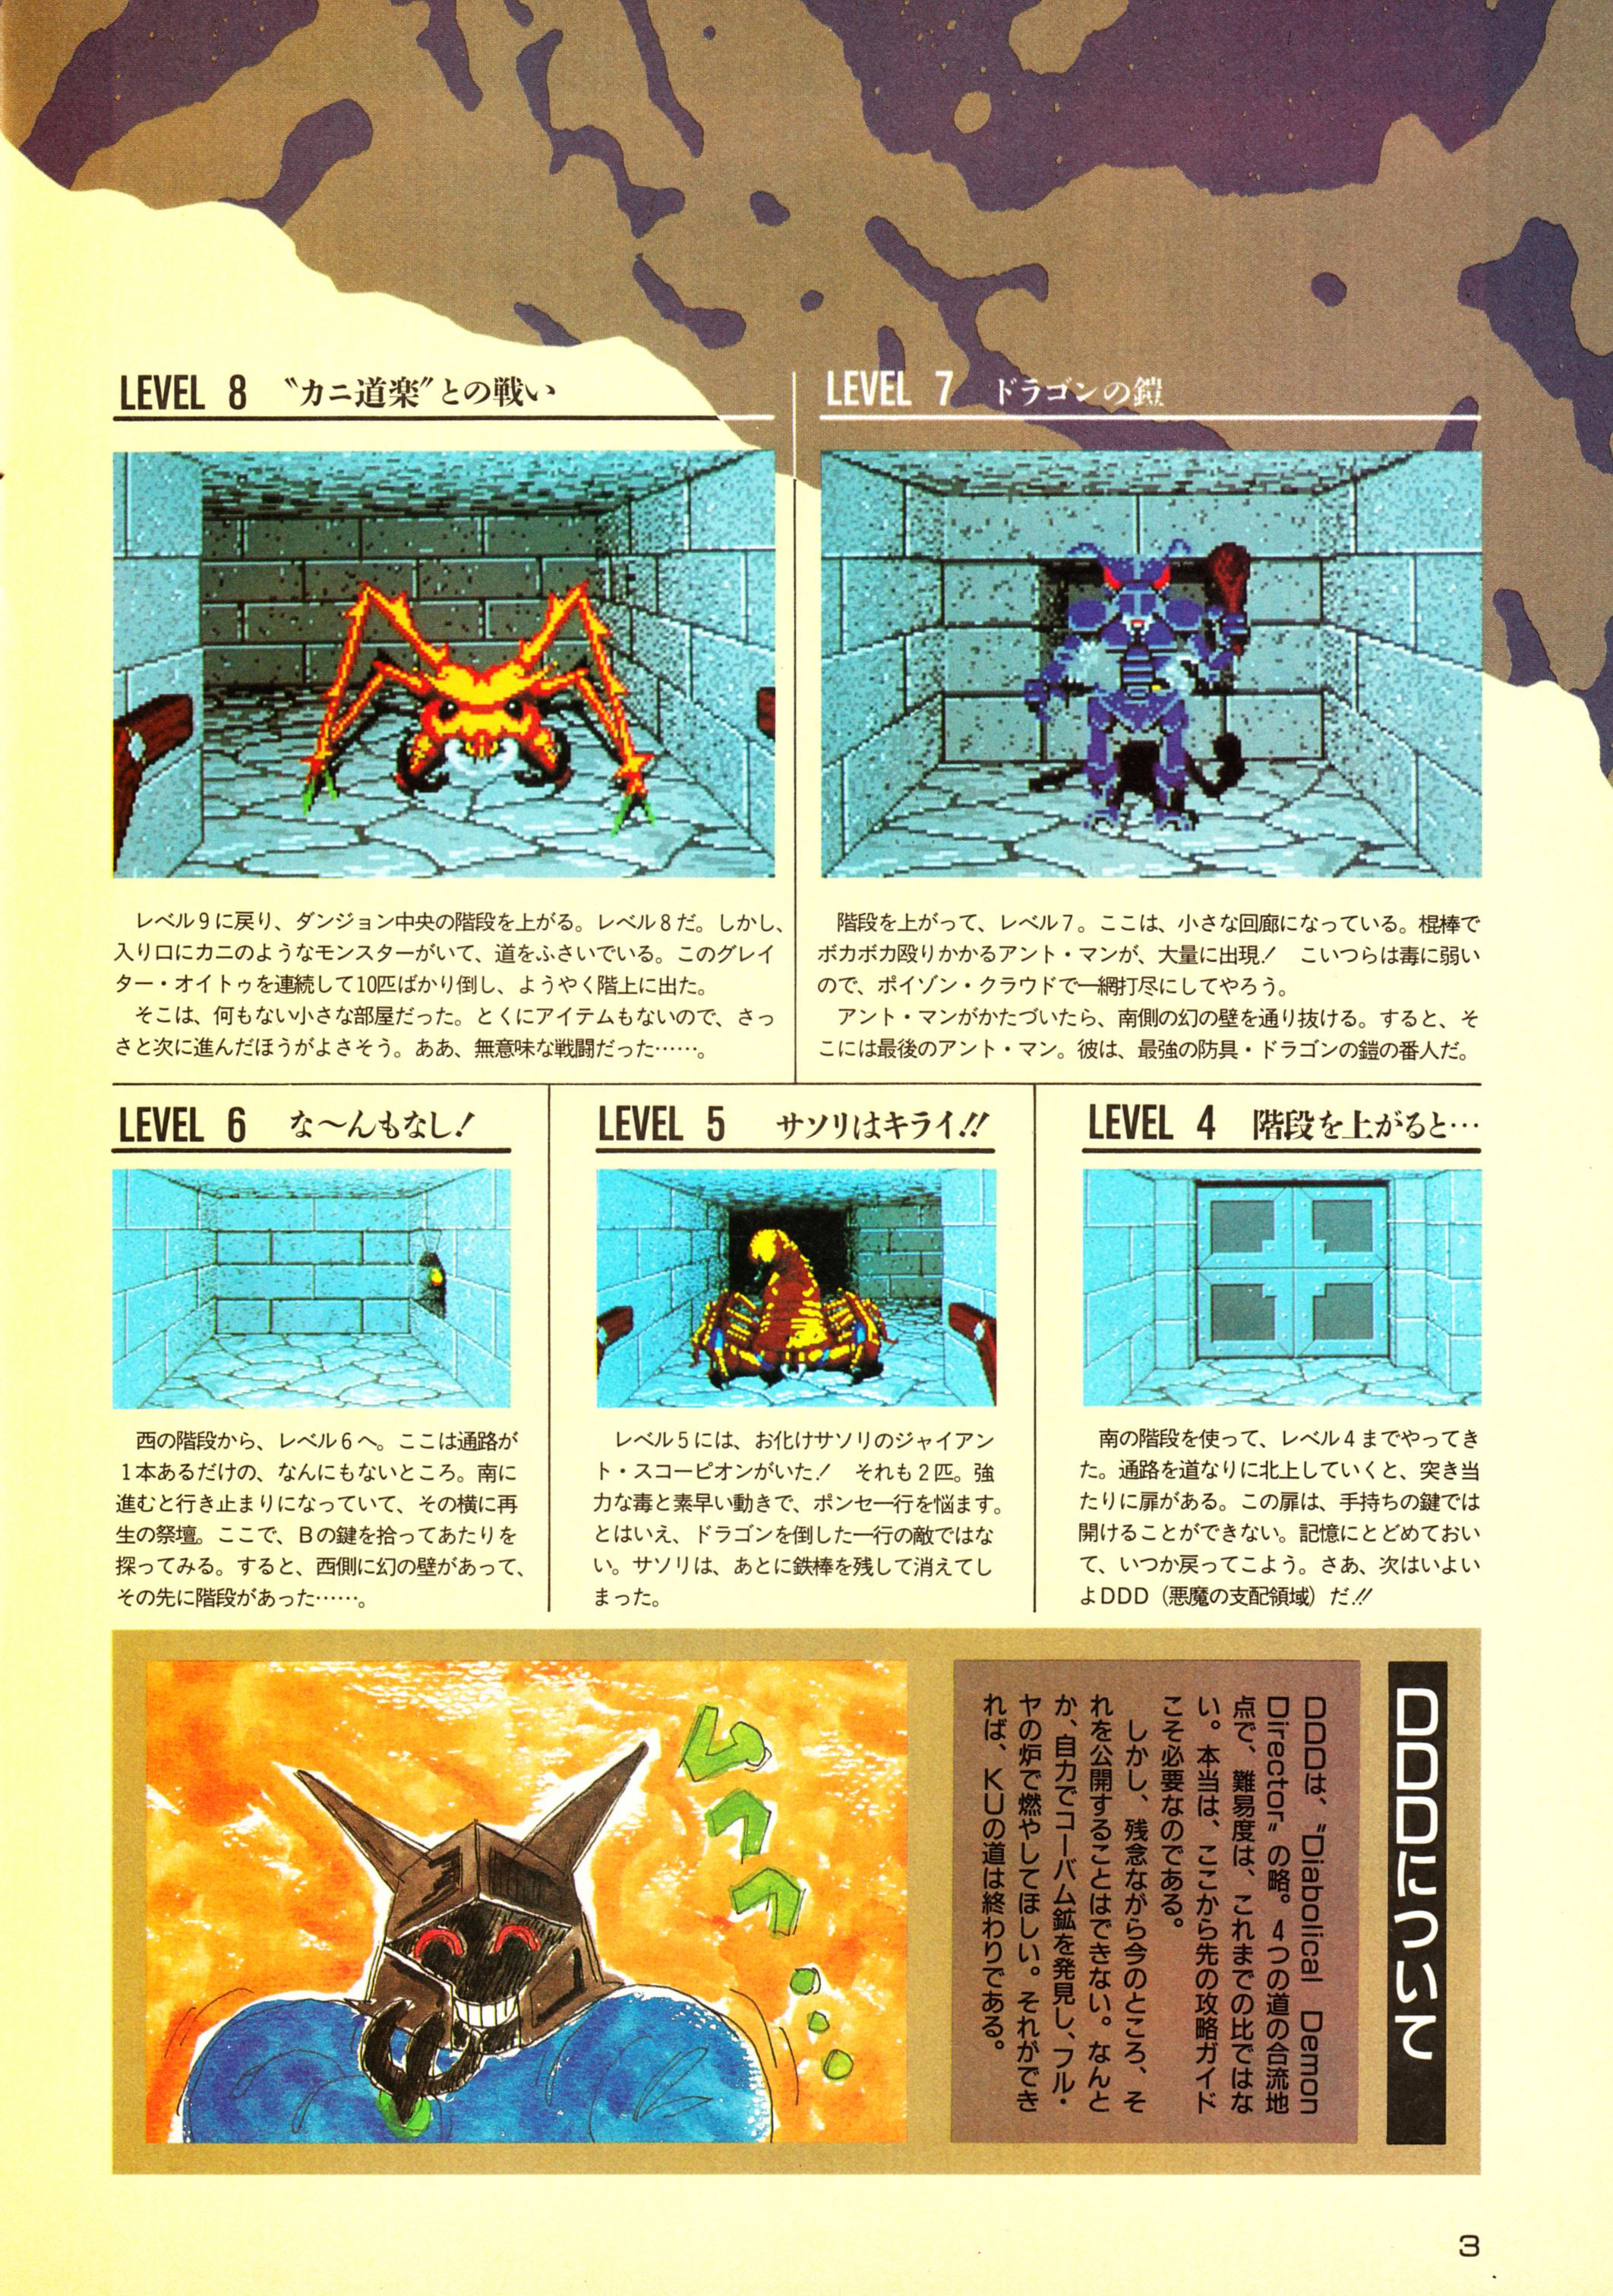 Supplement - Chaos Strikes Back Companion Guide II Guide published in Japanese magazine 'Popcom', Vol 9 No 3 01 March 1991, Page 5